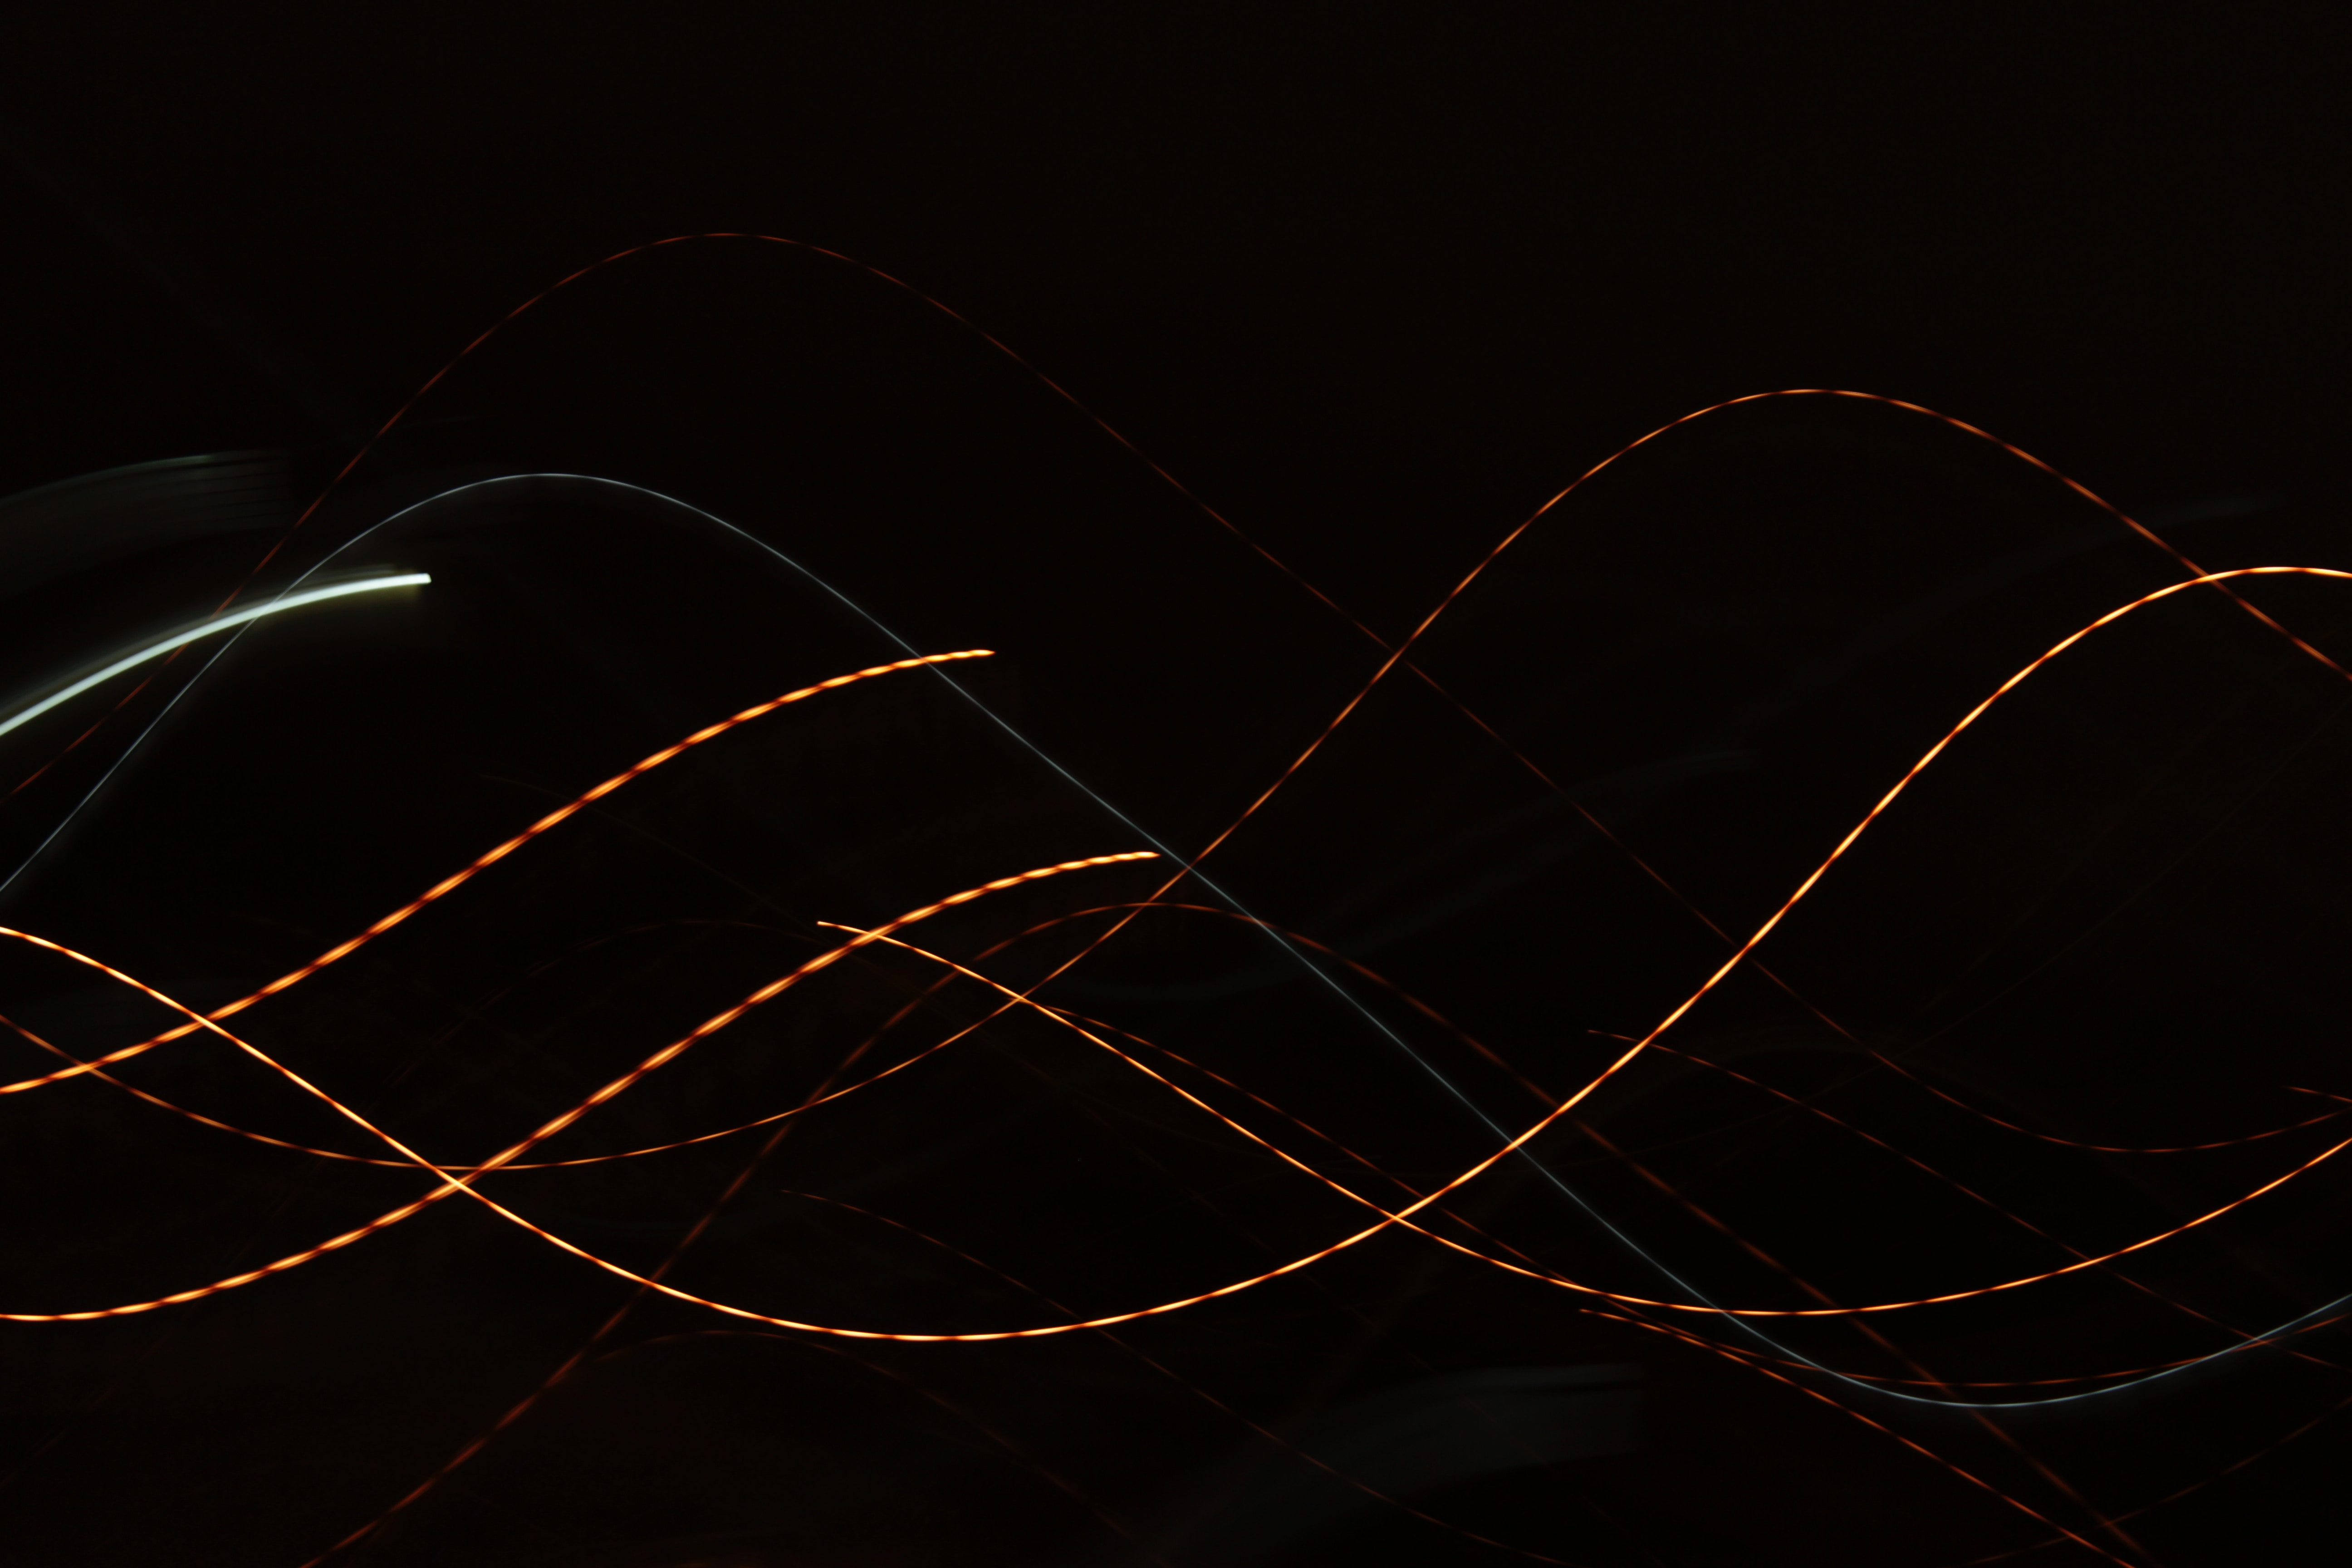 Colorful sine waves on a black background.